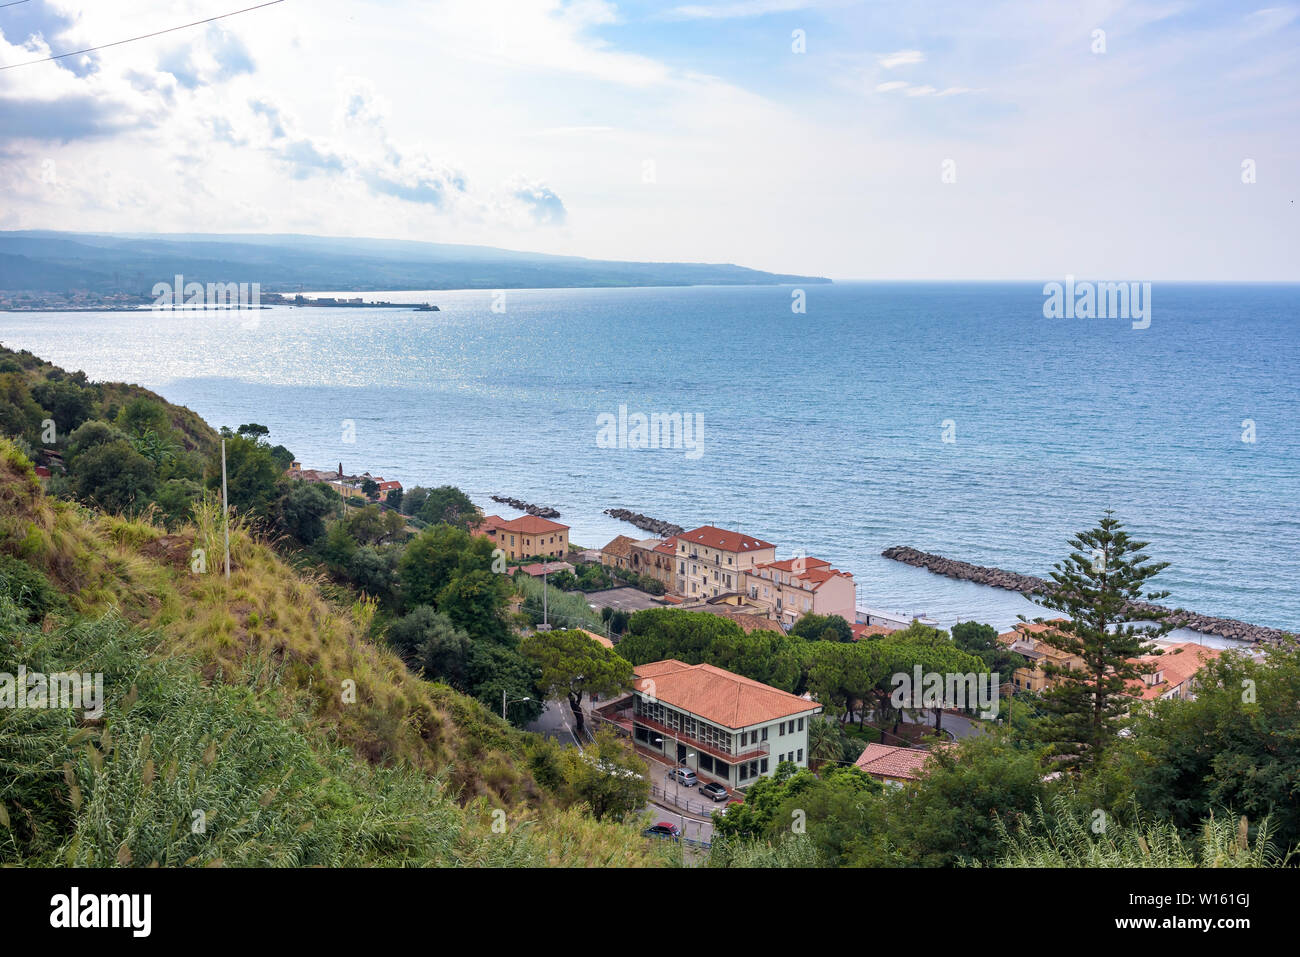 View of Calabrian coast in Pizzo town, Italy Stock Photo